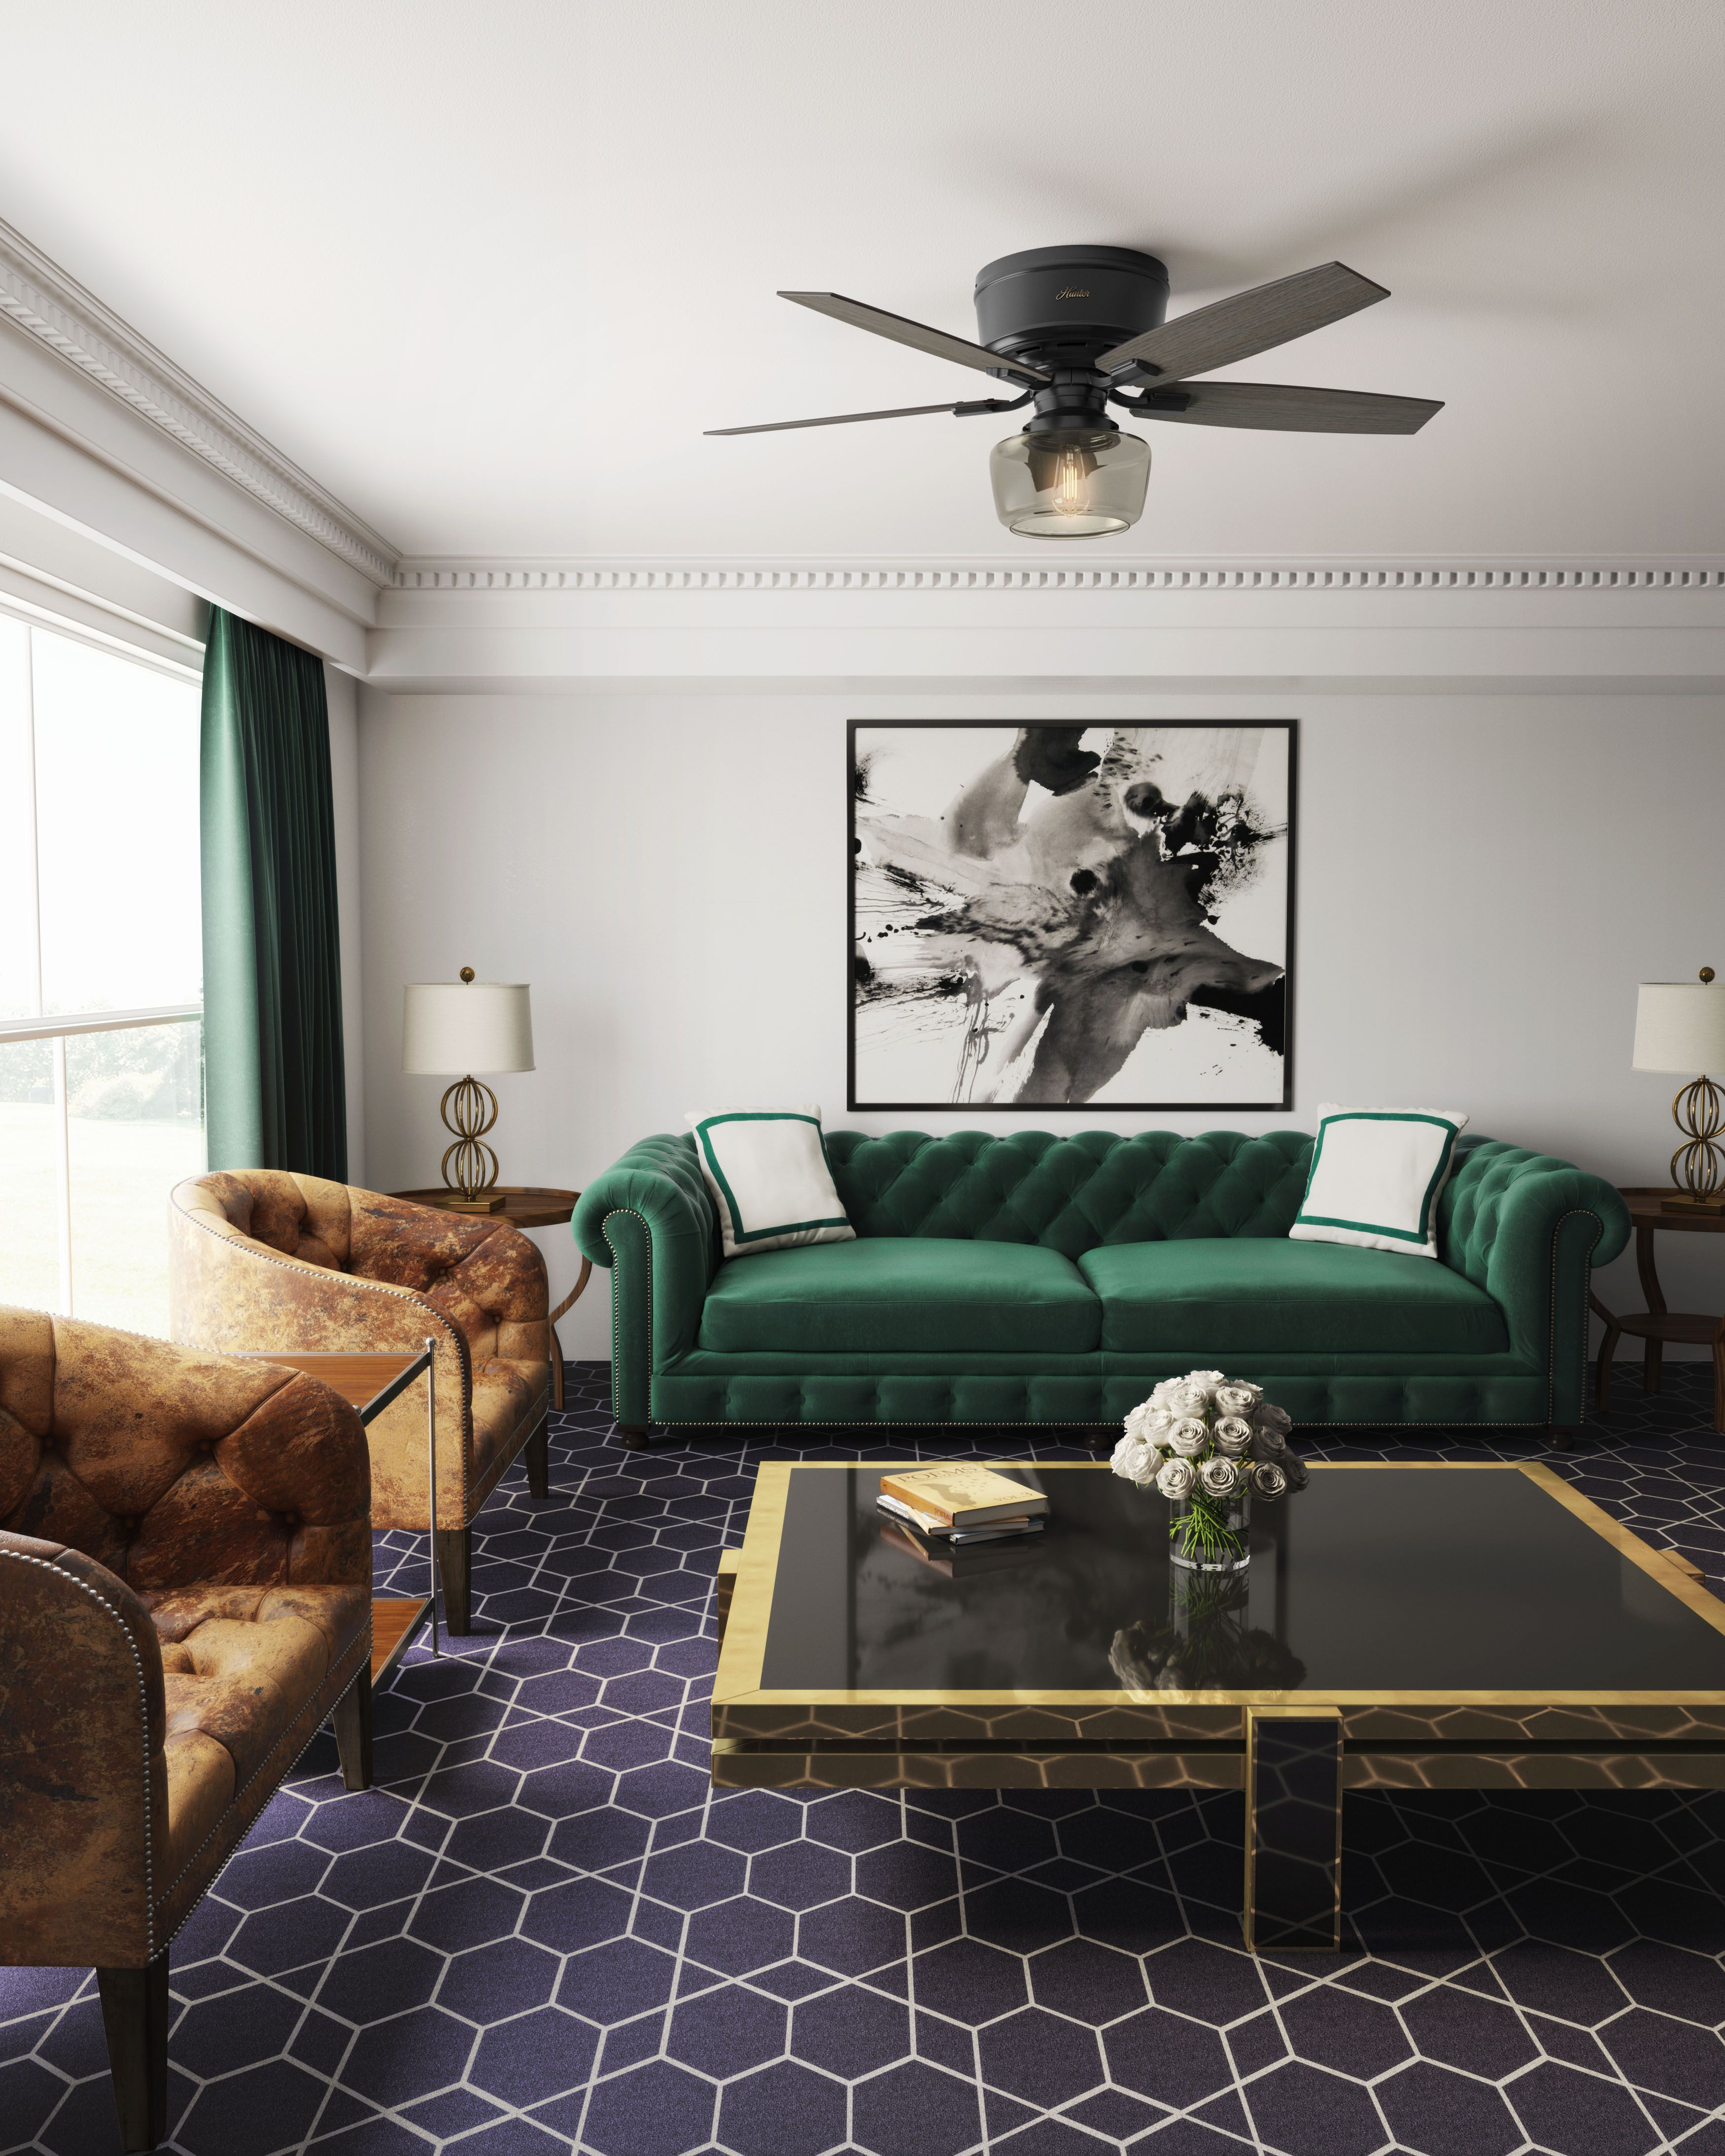 31+ Dorable Eclectic Living Room (With images) Ceiling